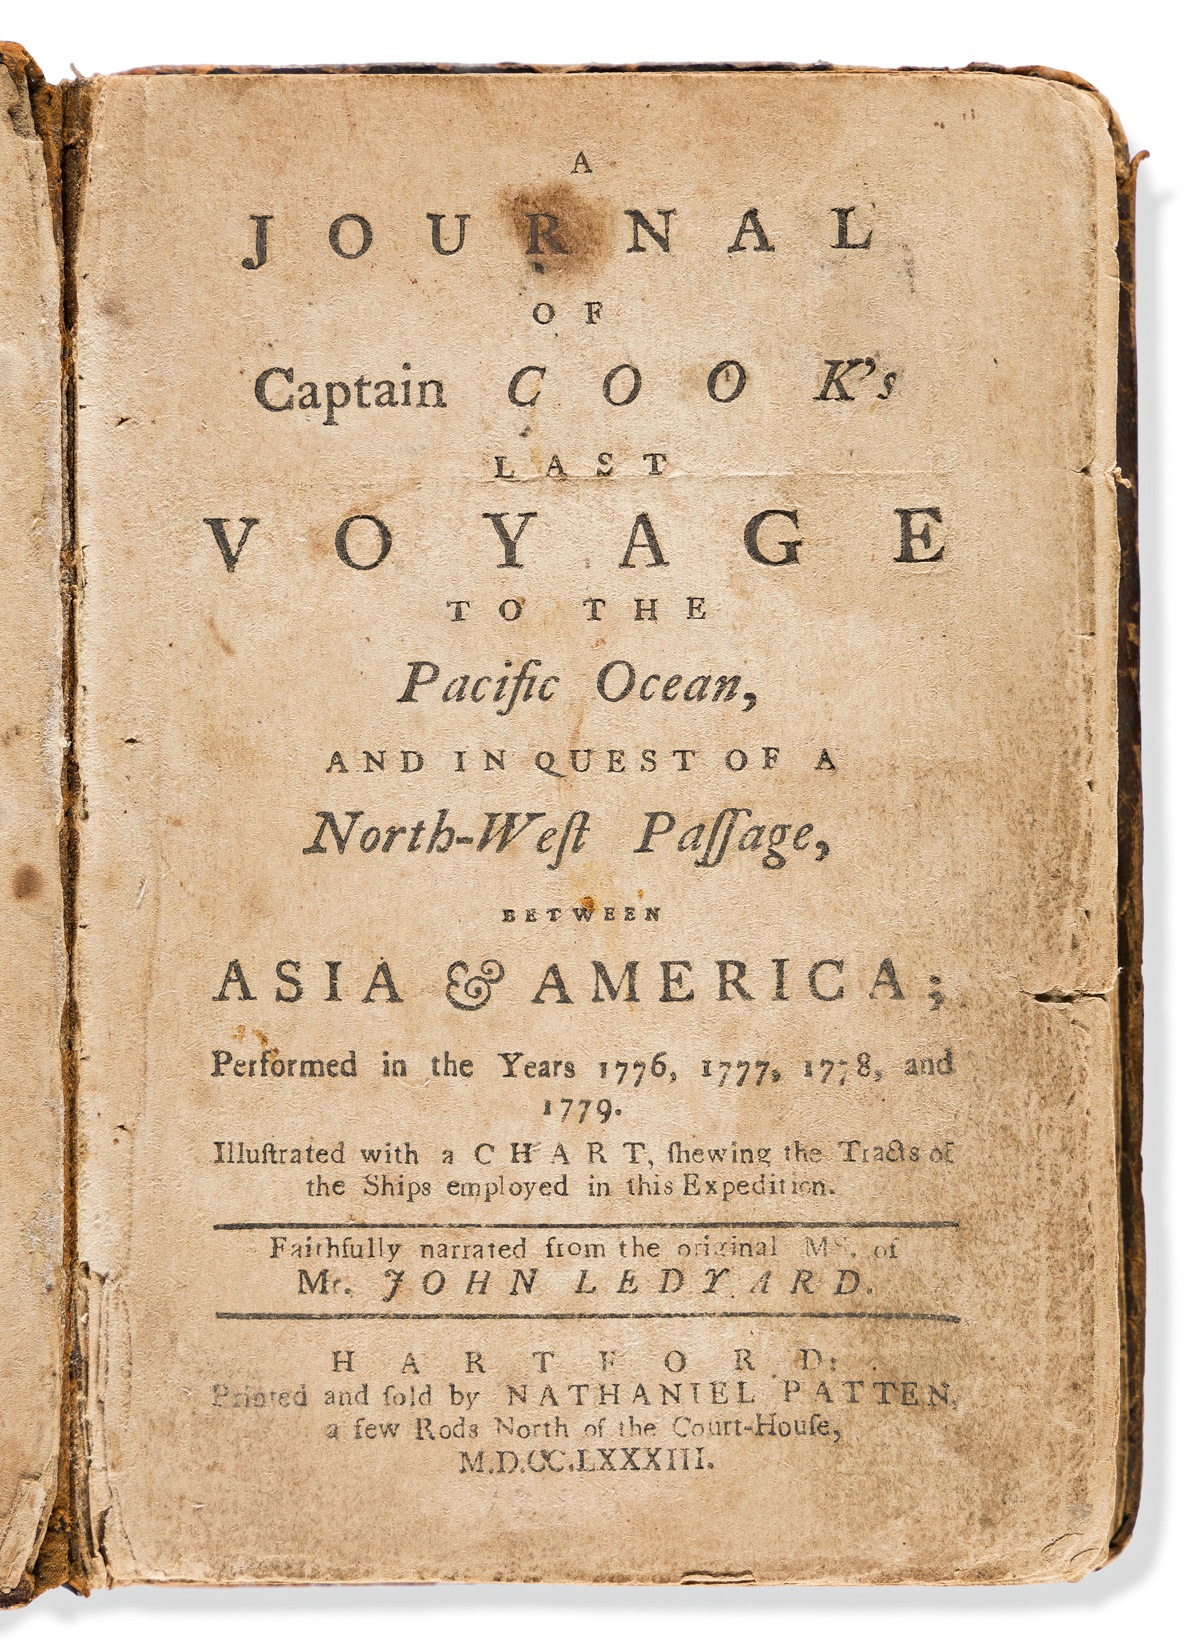 Ledyard, John (1751-1789) A Journal of Captain Cooks Last Voyage to the Pacific Ocean, and in Quest of a North-West Passage, between A